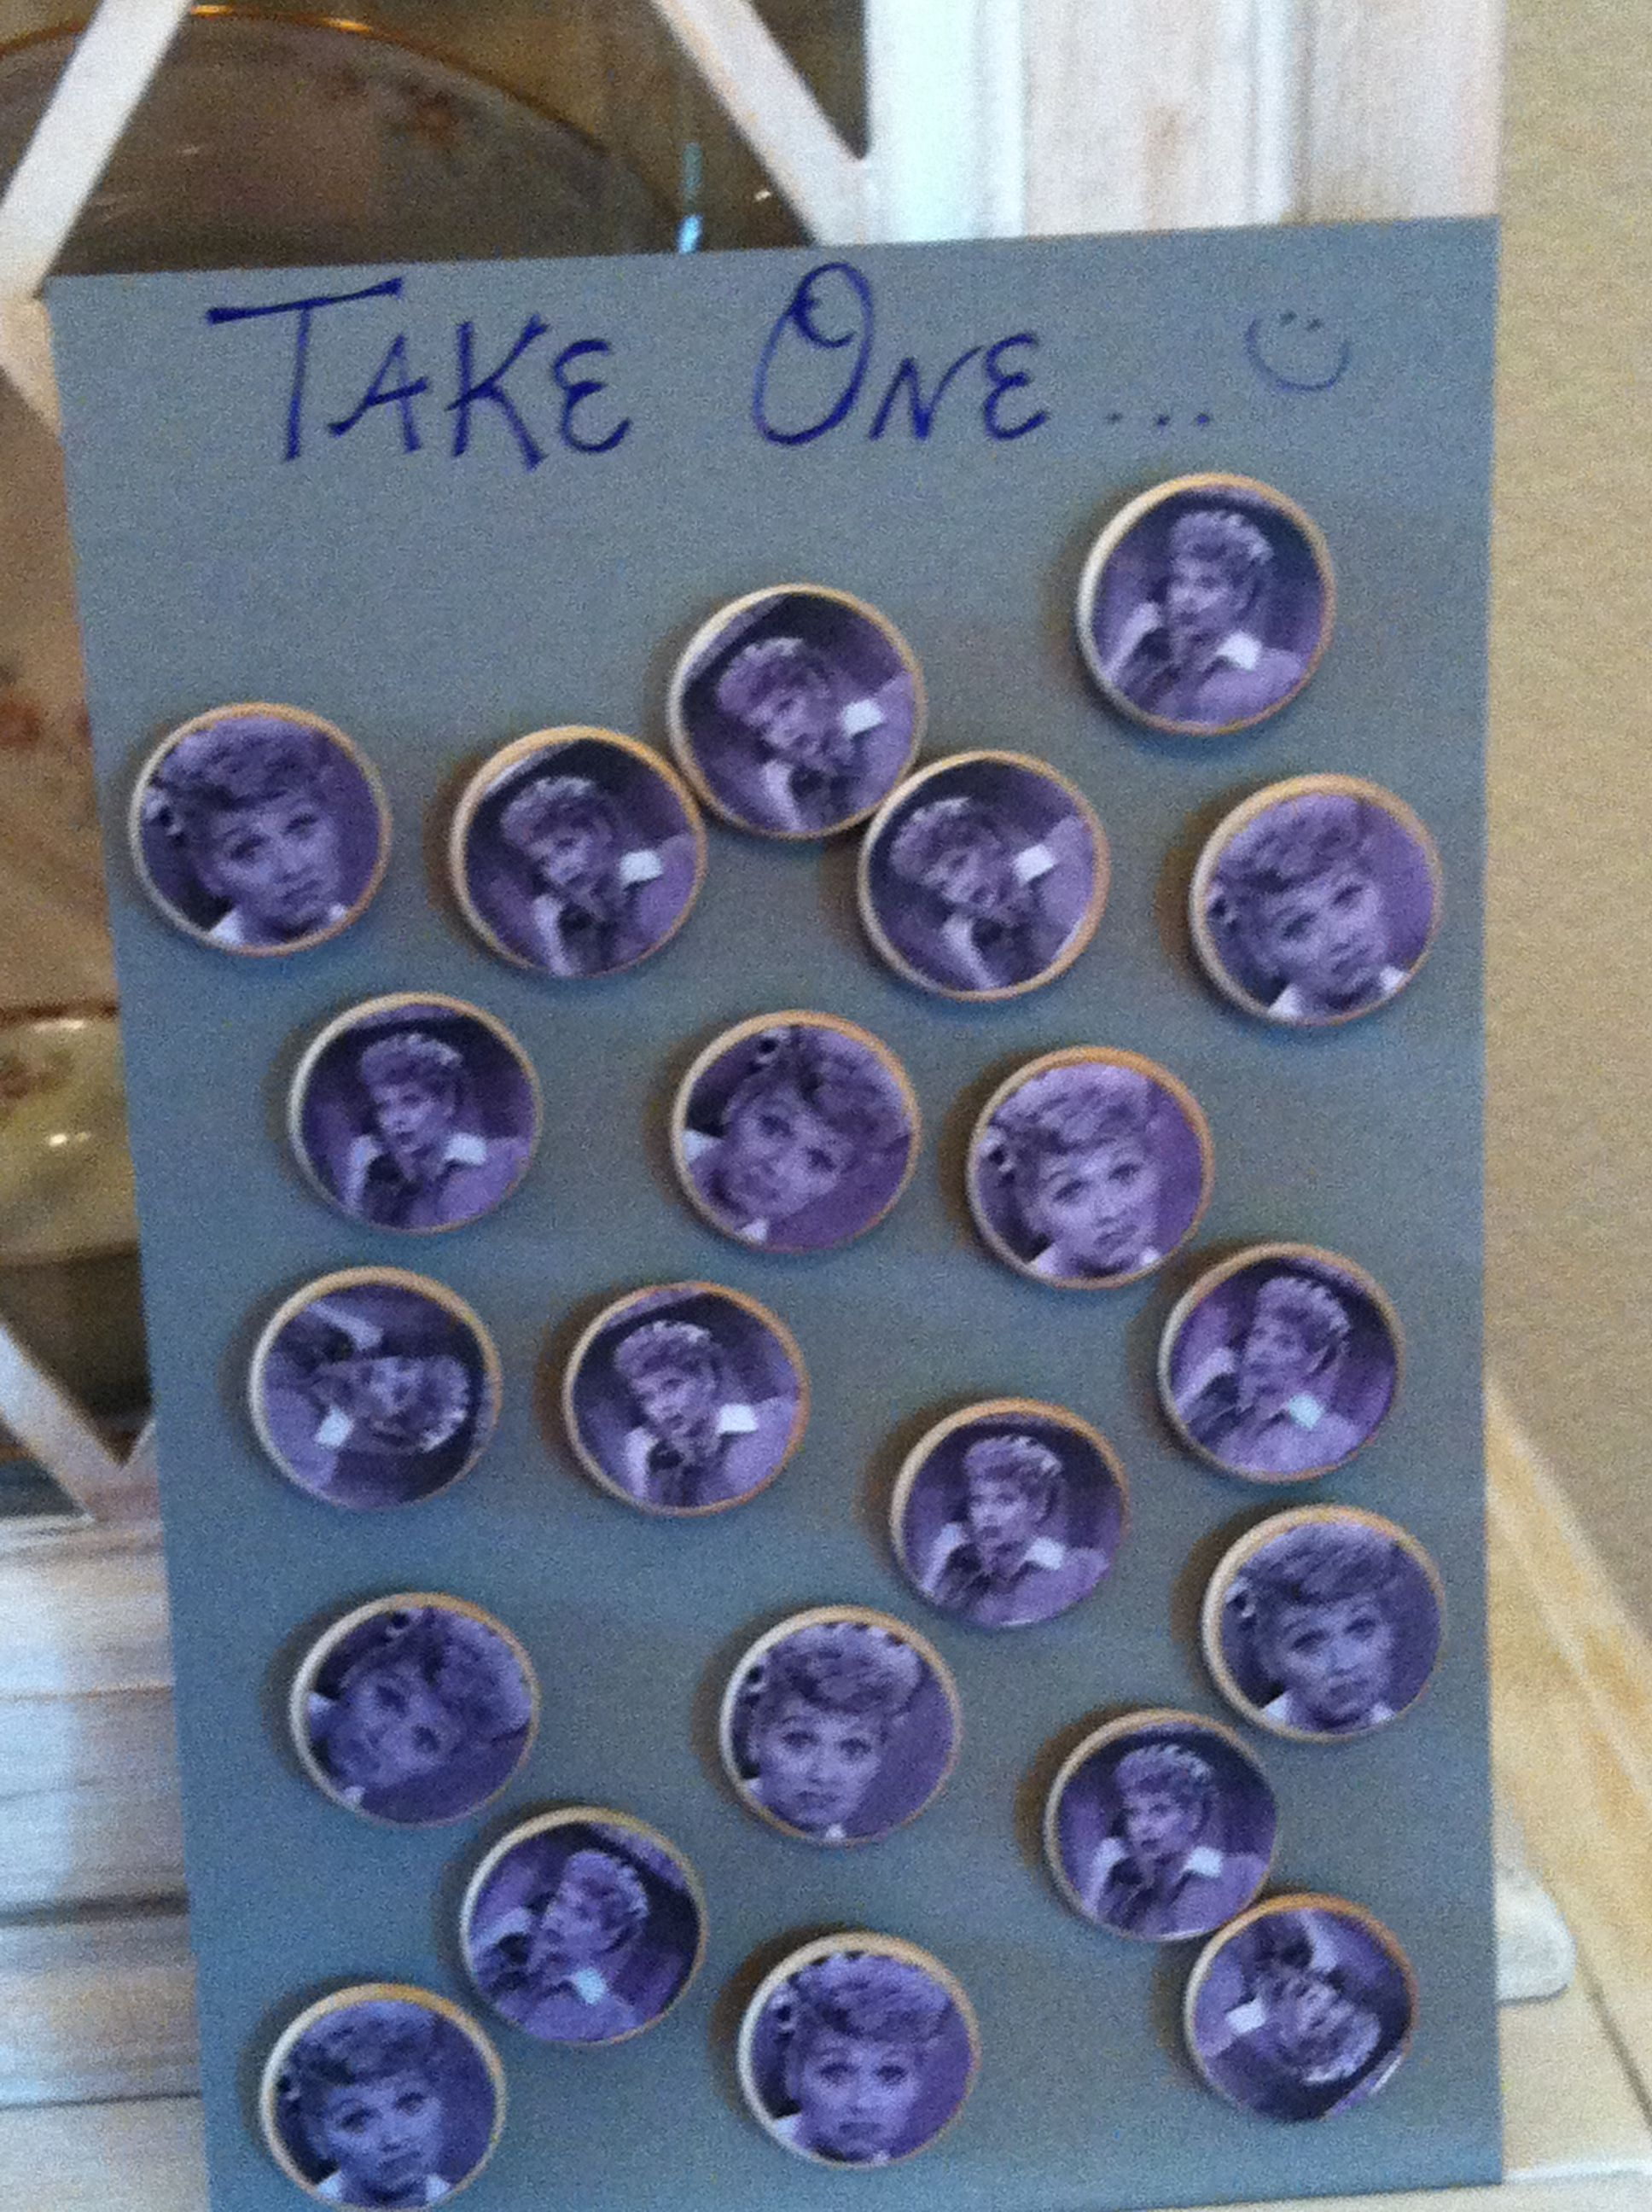 Made I love lucy magnets for party